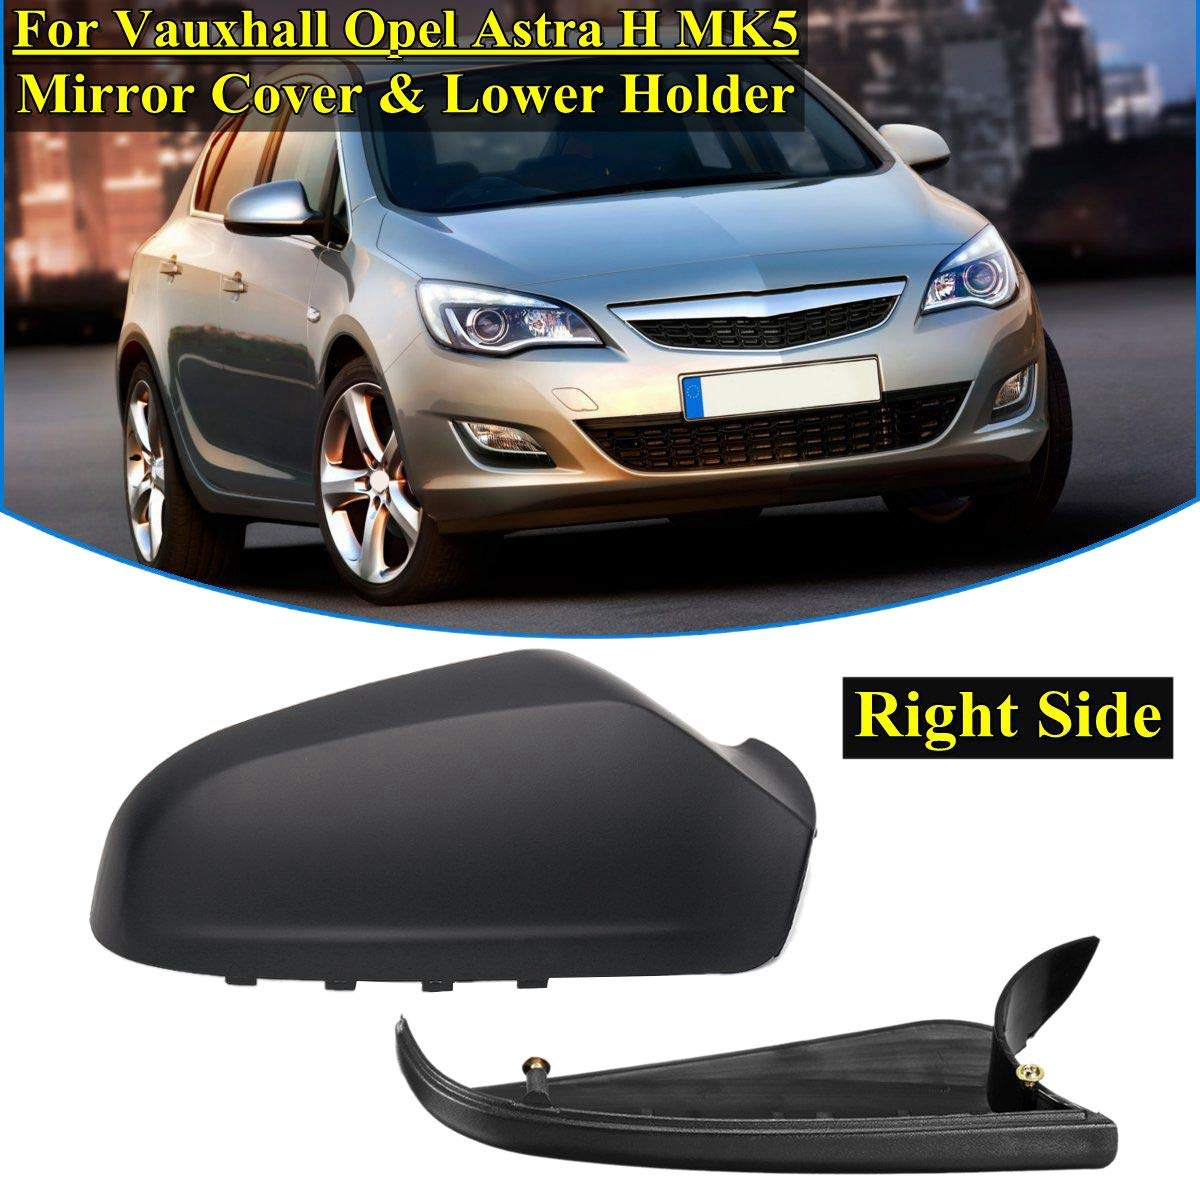 Sothat Car Left Side Mirror Housing Wing Mirror Cover For Vauxhall Astra H Mk5 2004-2009